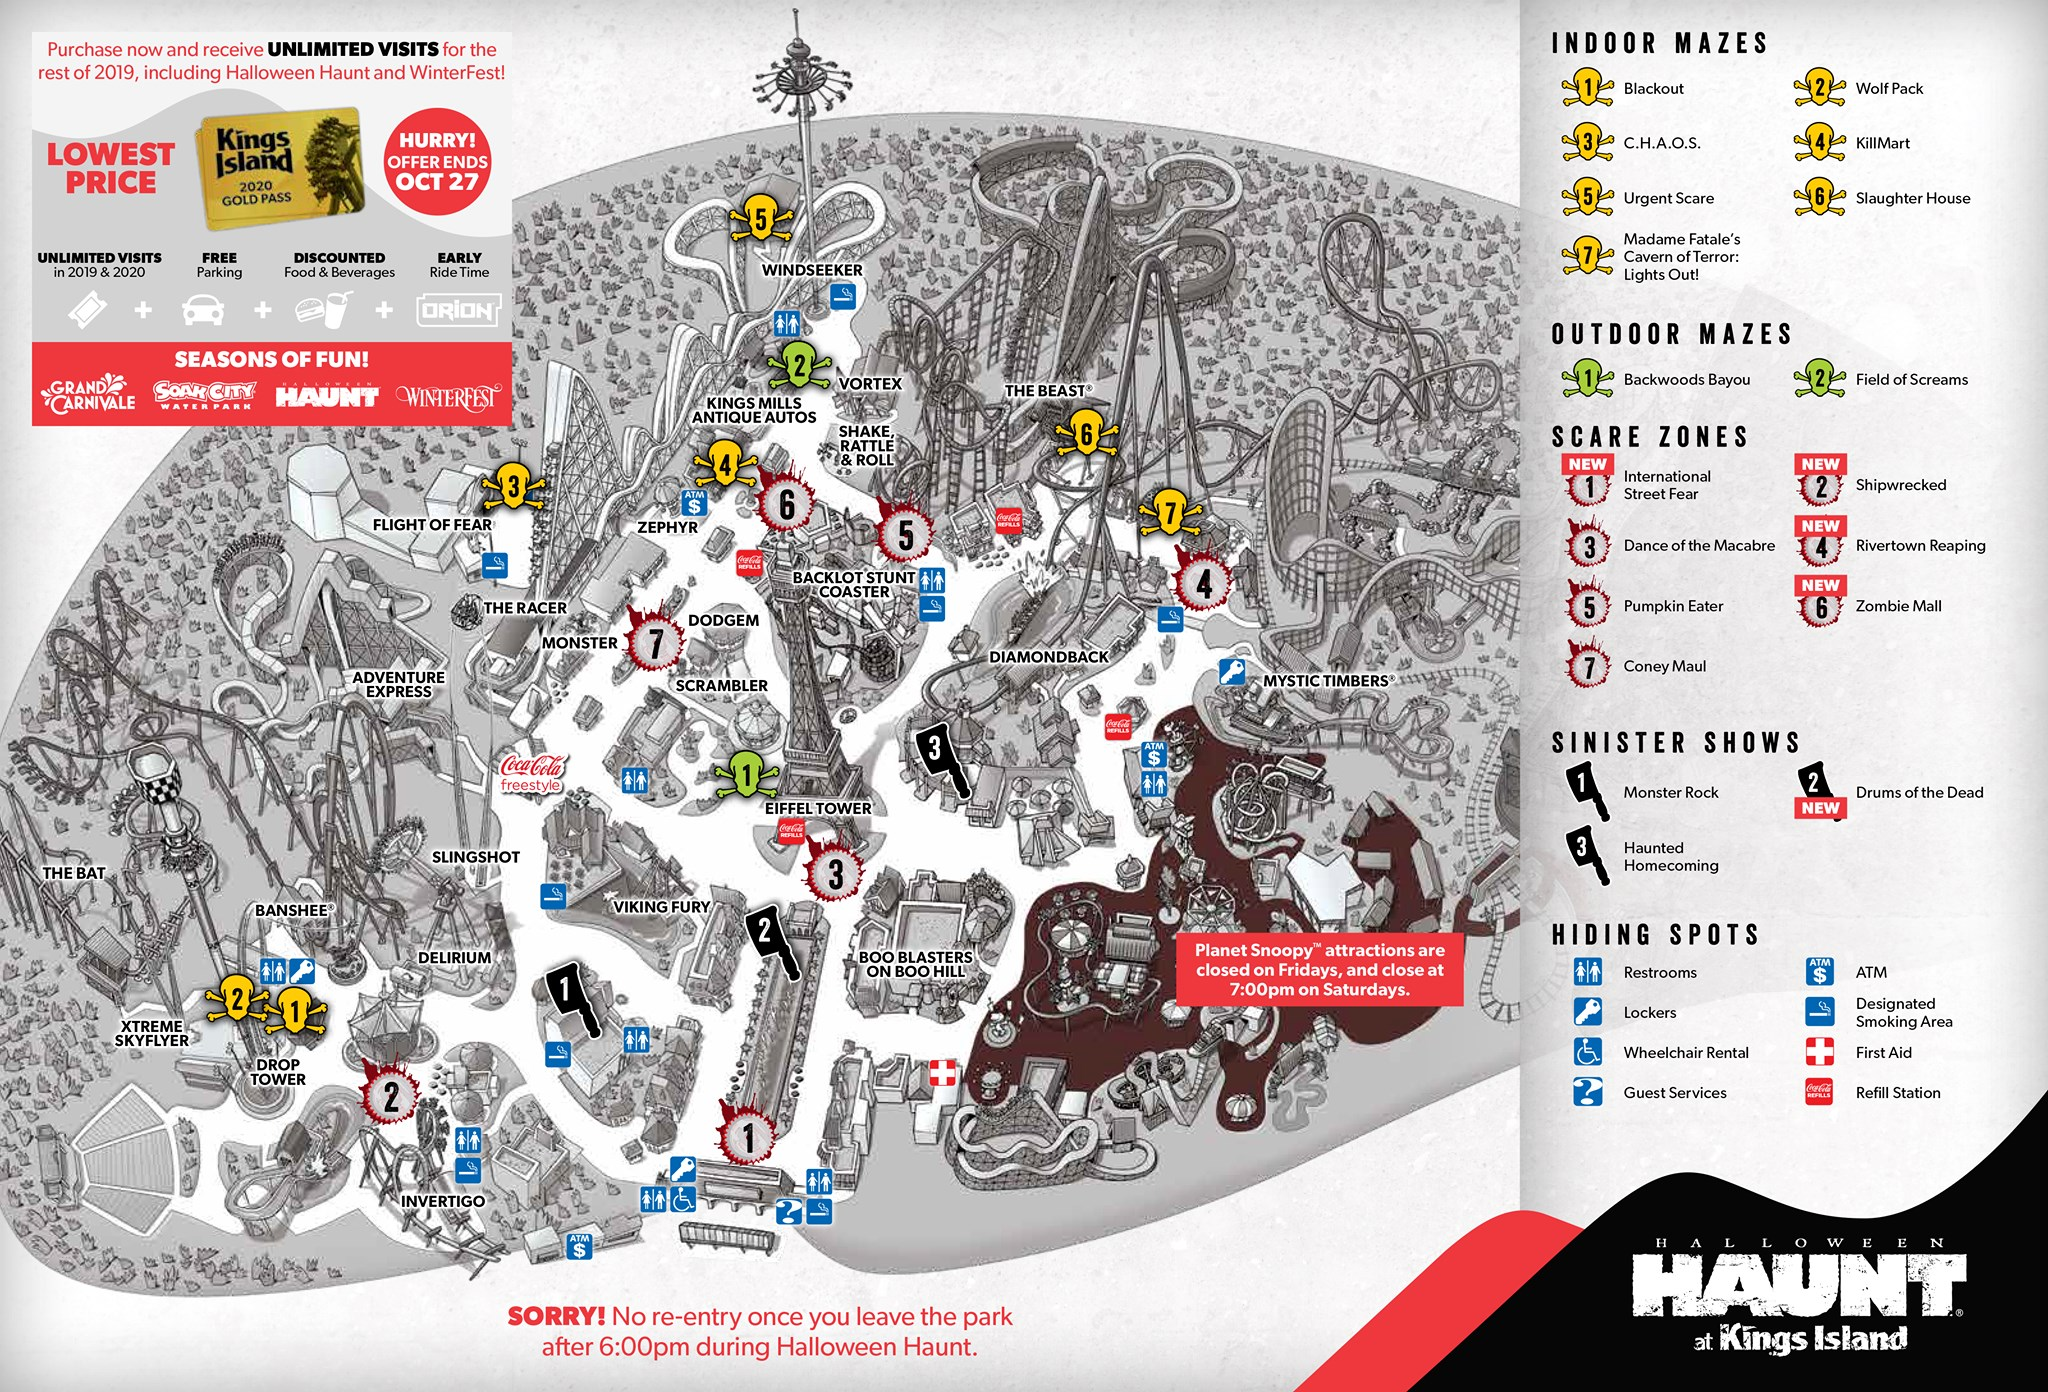 2012 Kings Island Park Map featuring the 40th Anniversary of the park